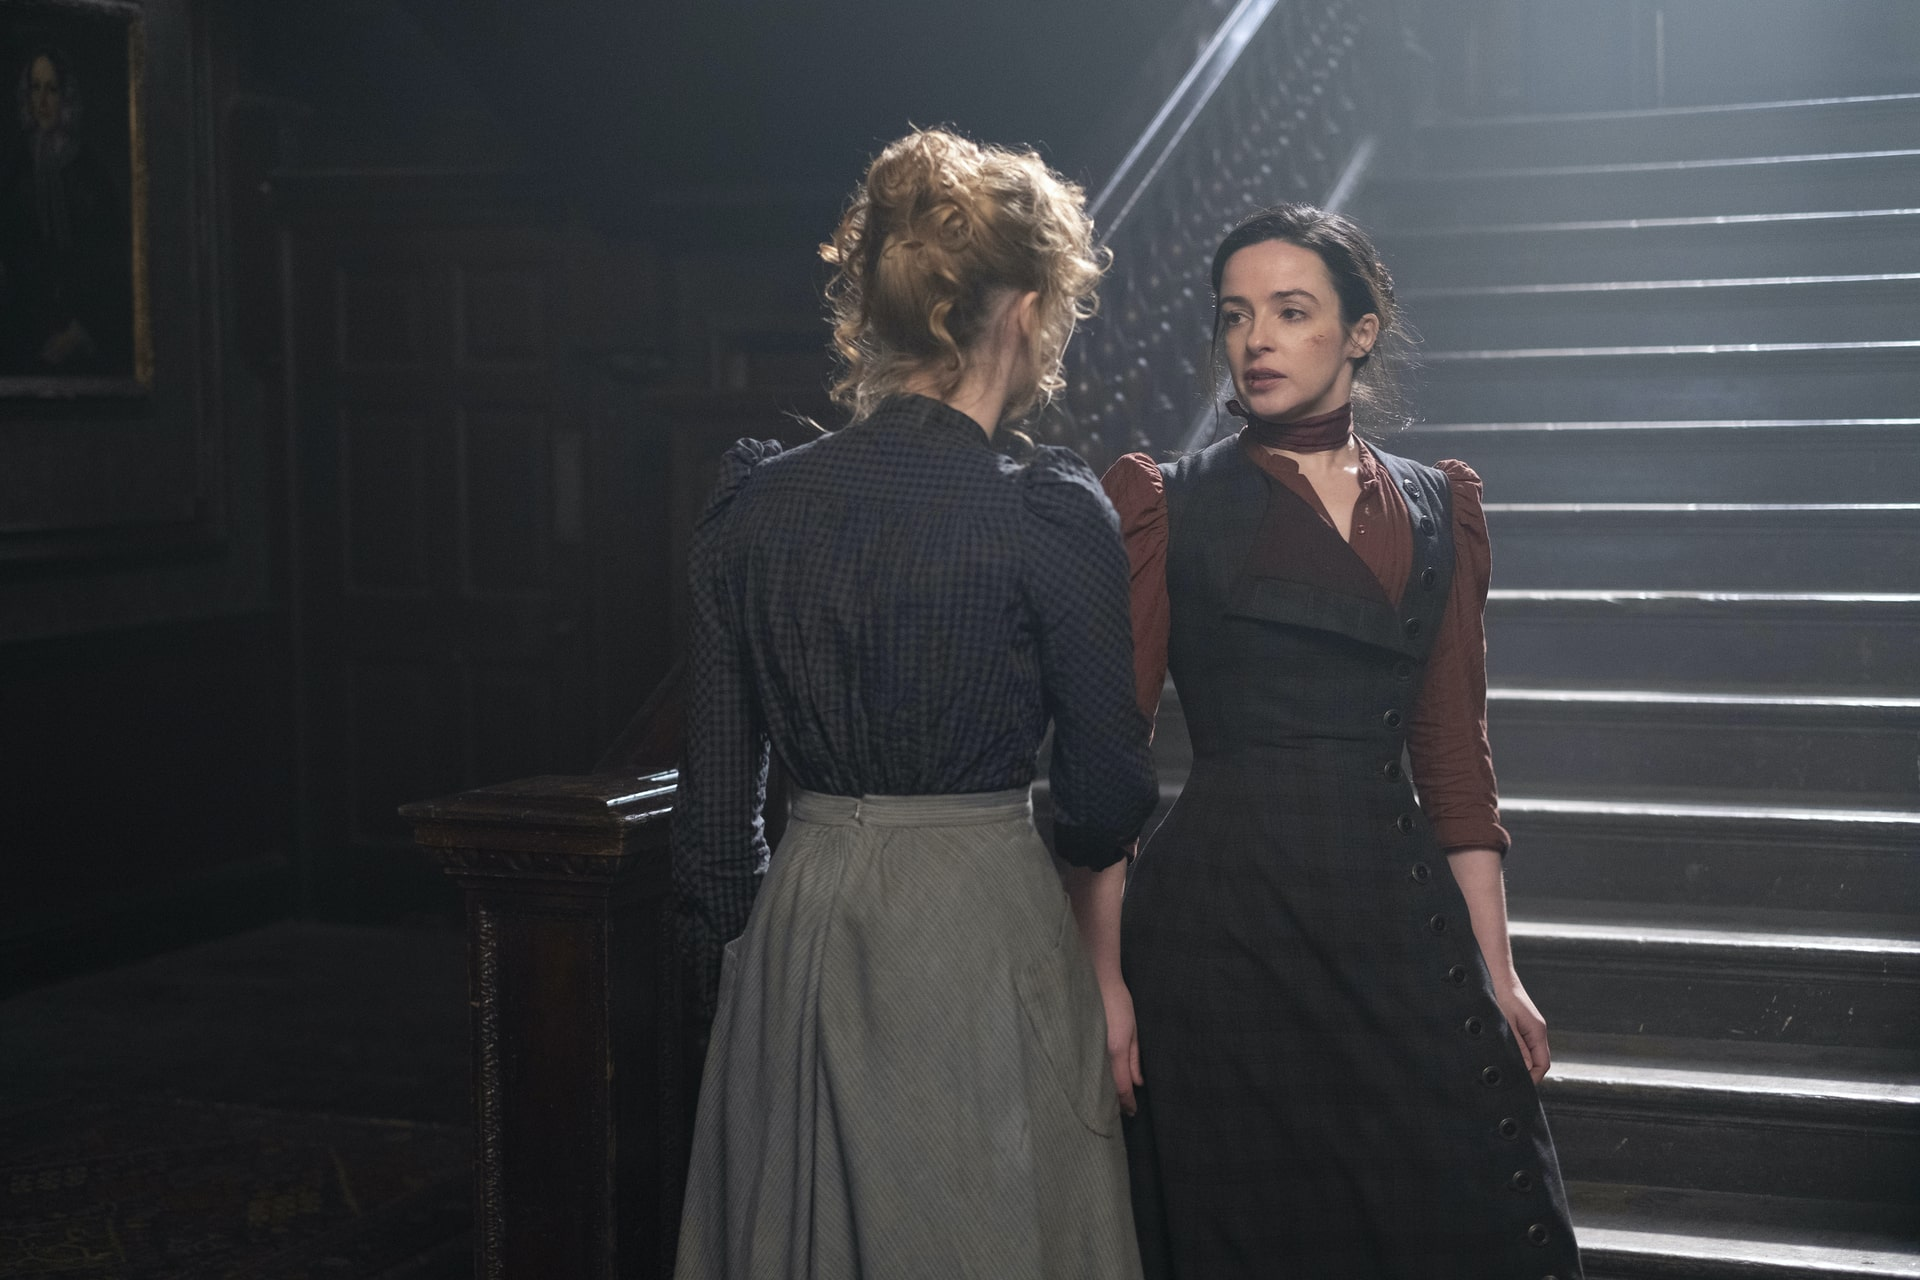 """'The Nevers' S1E4 """"Undertaking"""" ramps up the intrigue"""